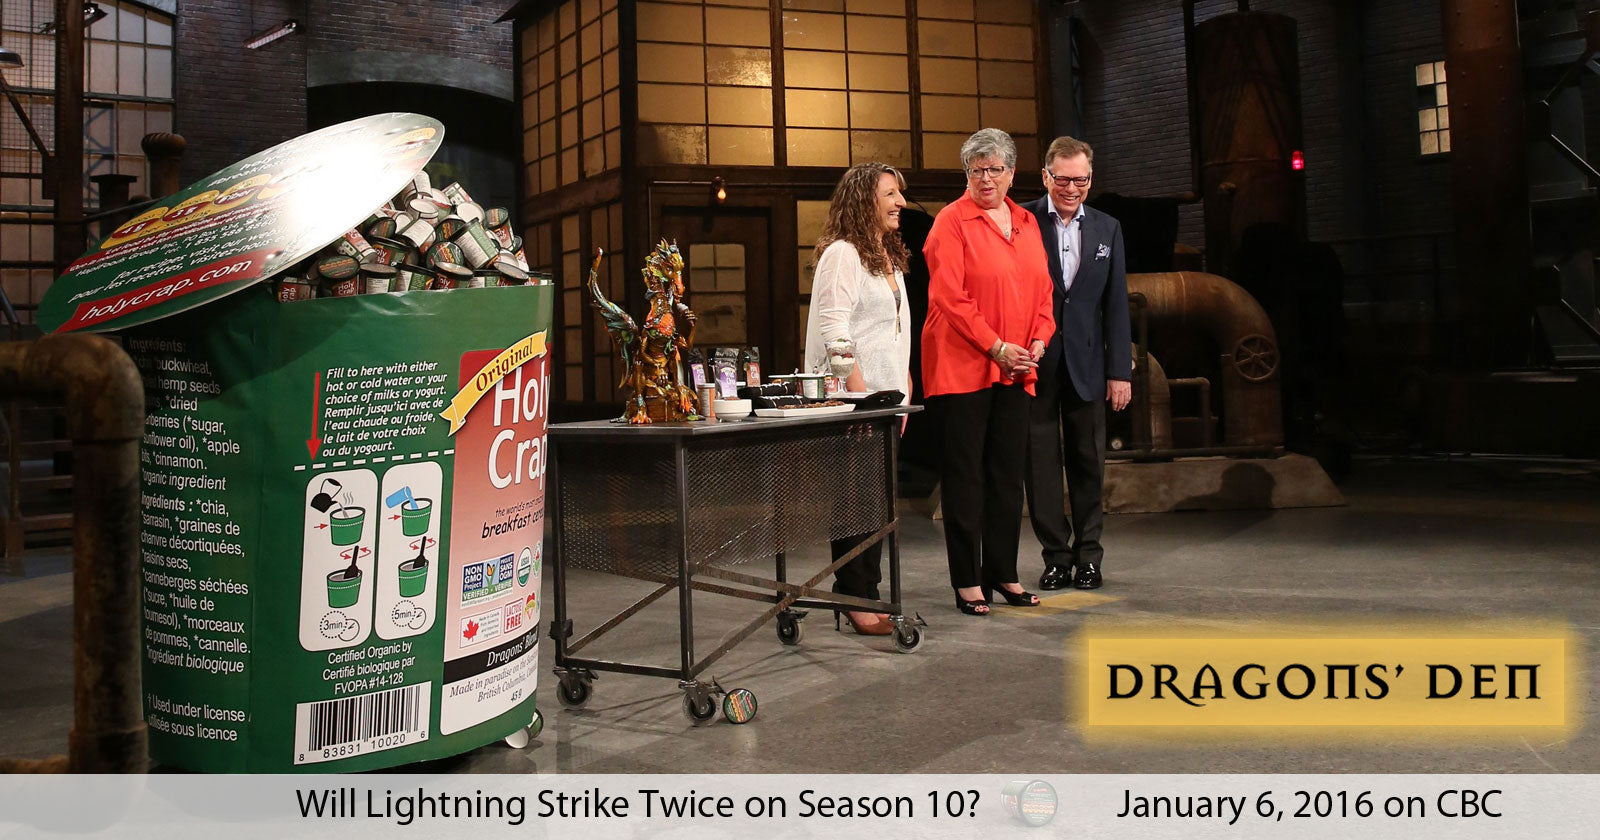 Brian and Corin Mullins with Executive Assistant, Dorothy Raymond on the set of the Dragons' Den